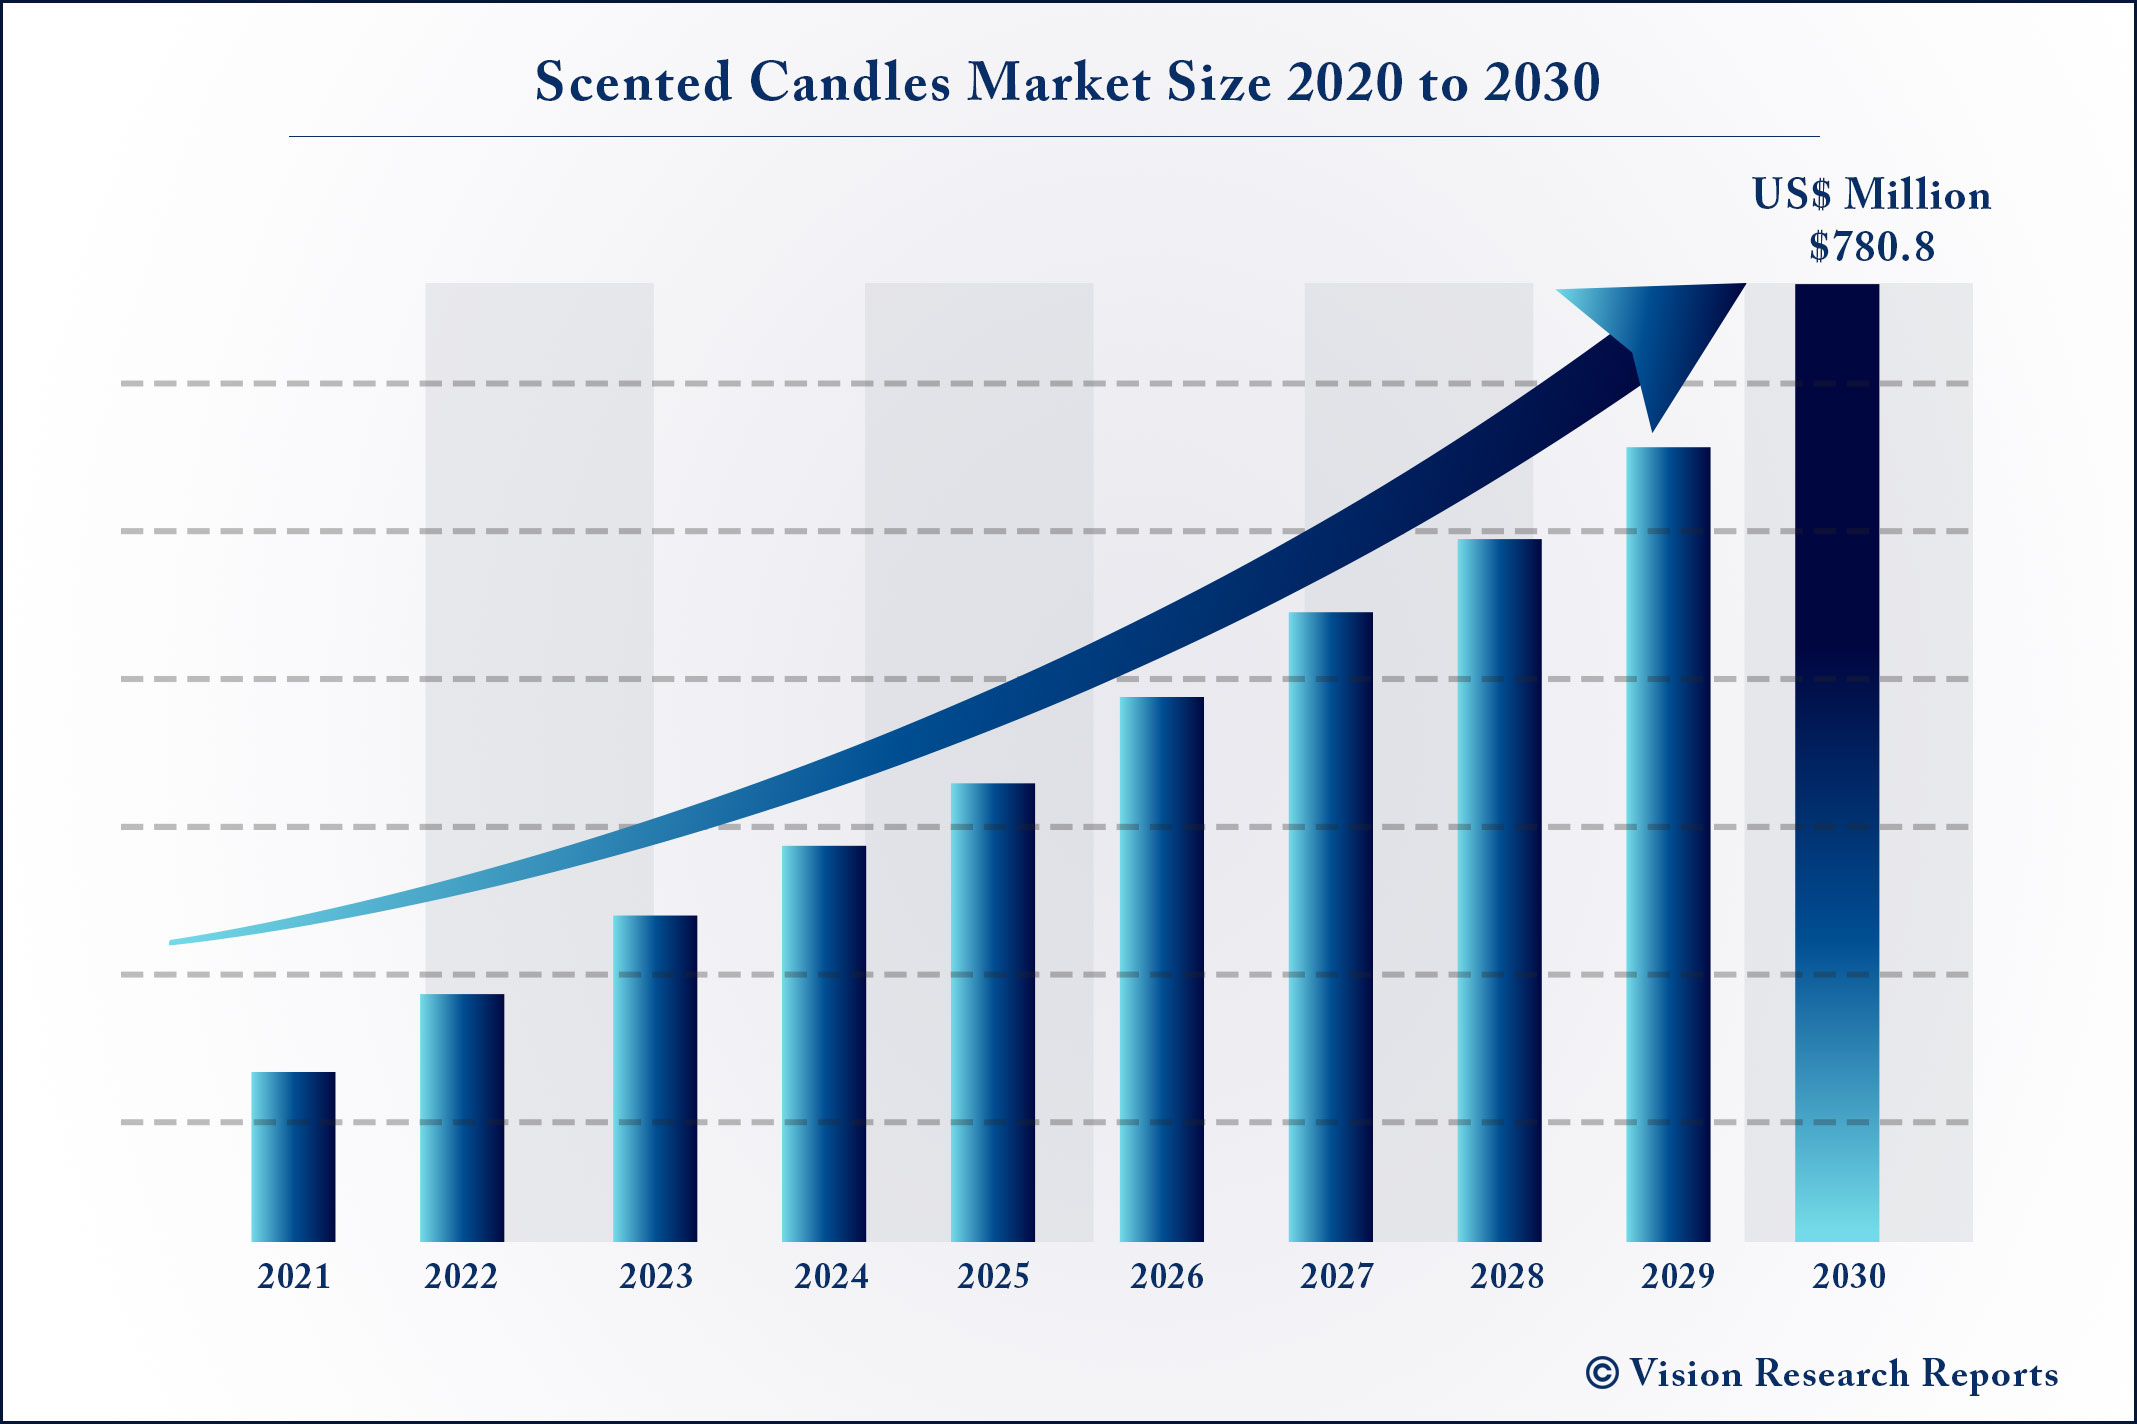 Scented Candles Market Size 2020 to 2030